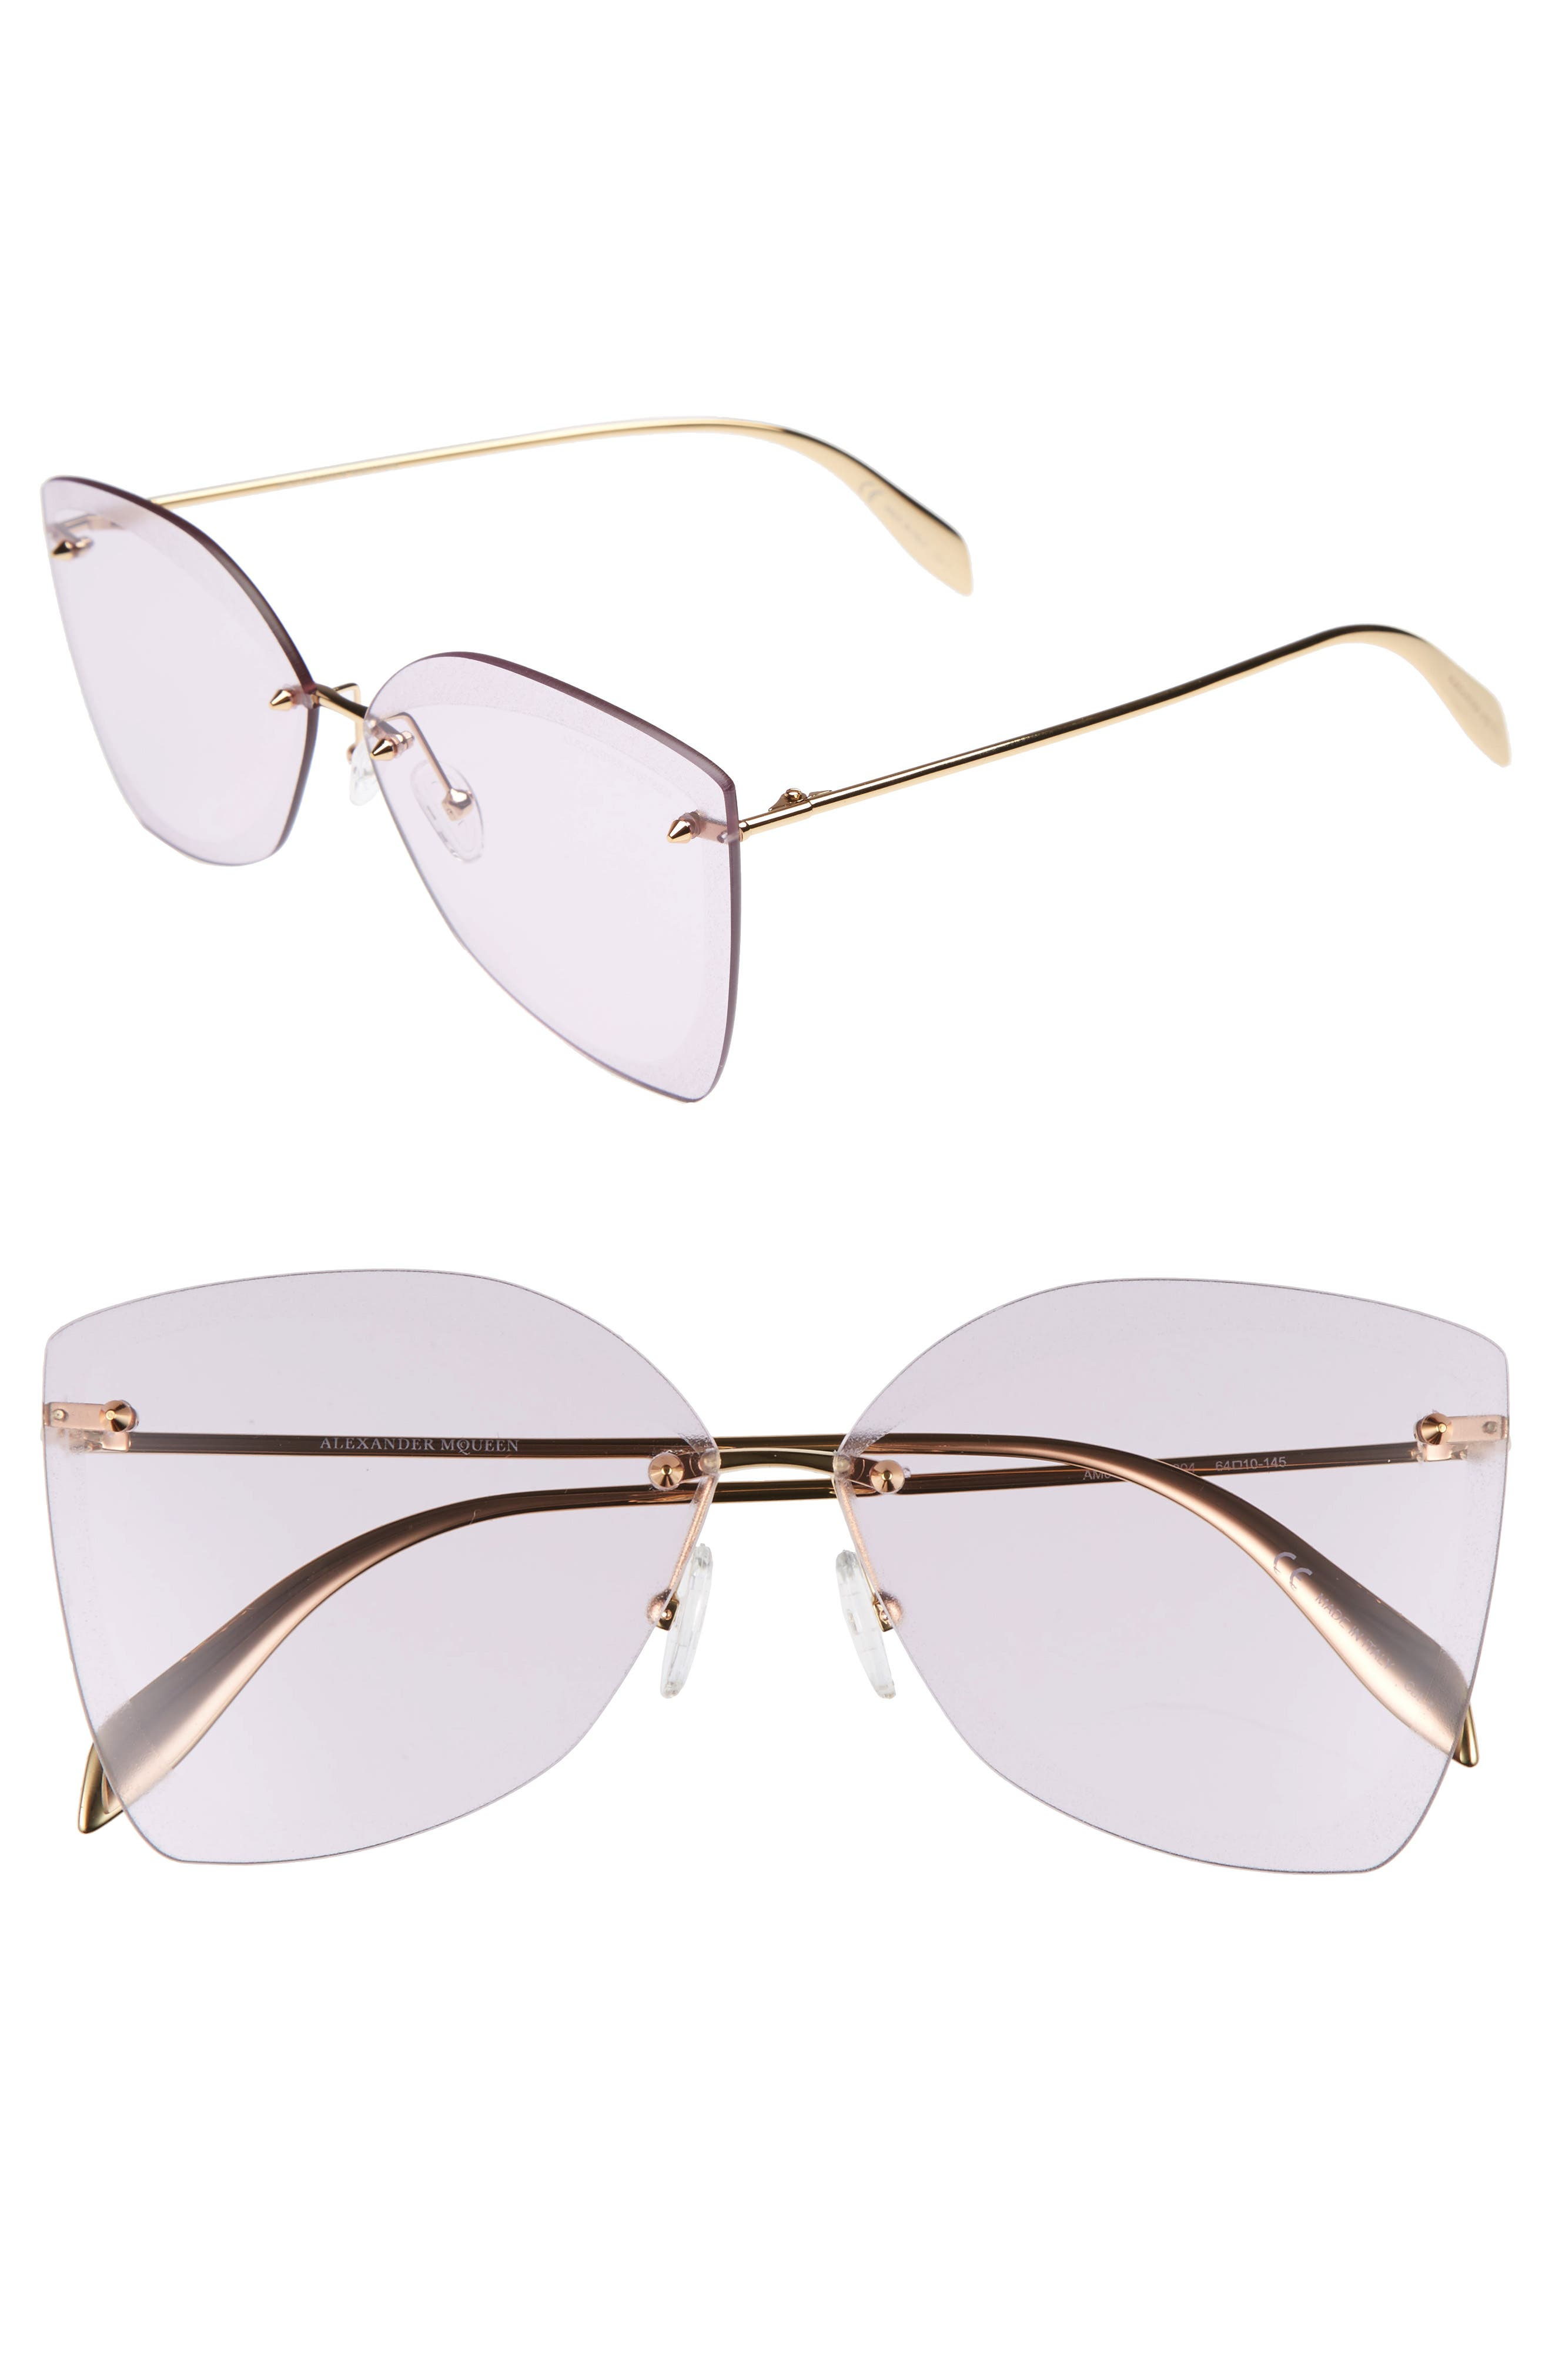 ALEXANDER MCQUEEN 64mm Oversize Rimless Sunglasses, Main, color, GOLD